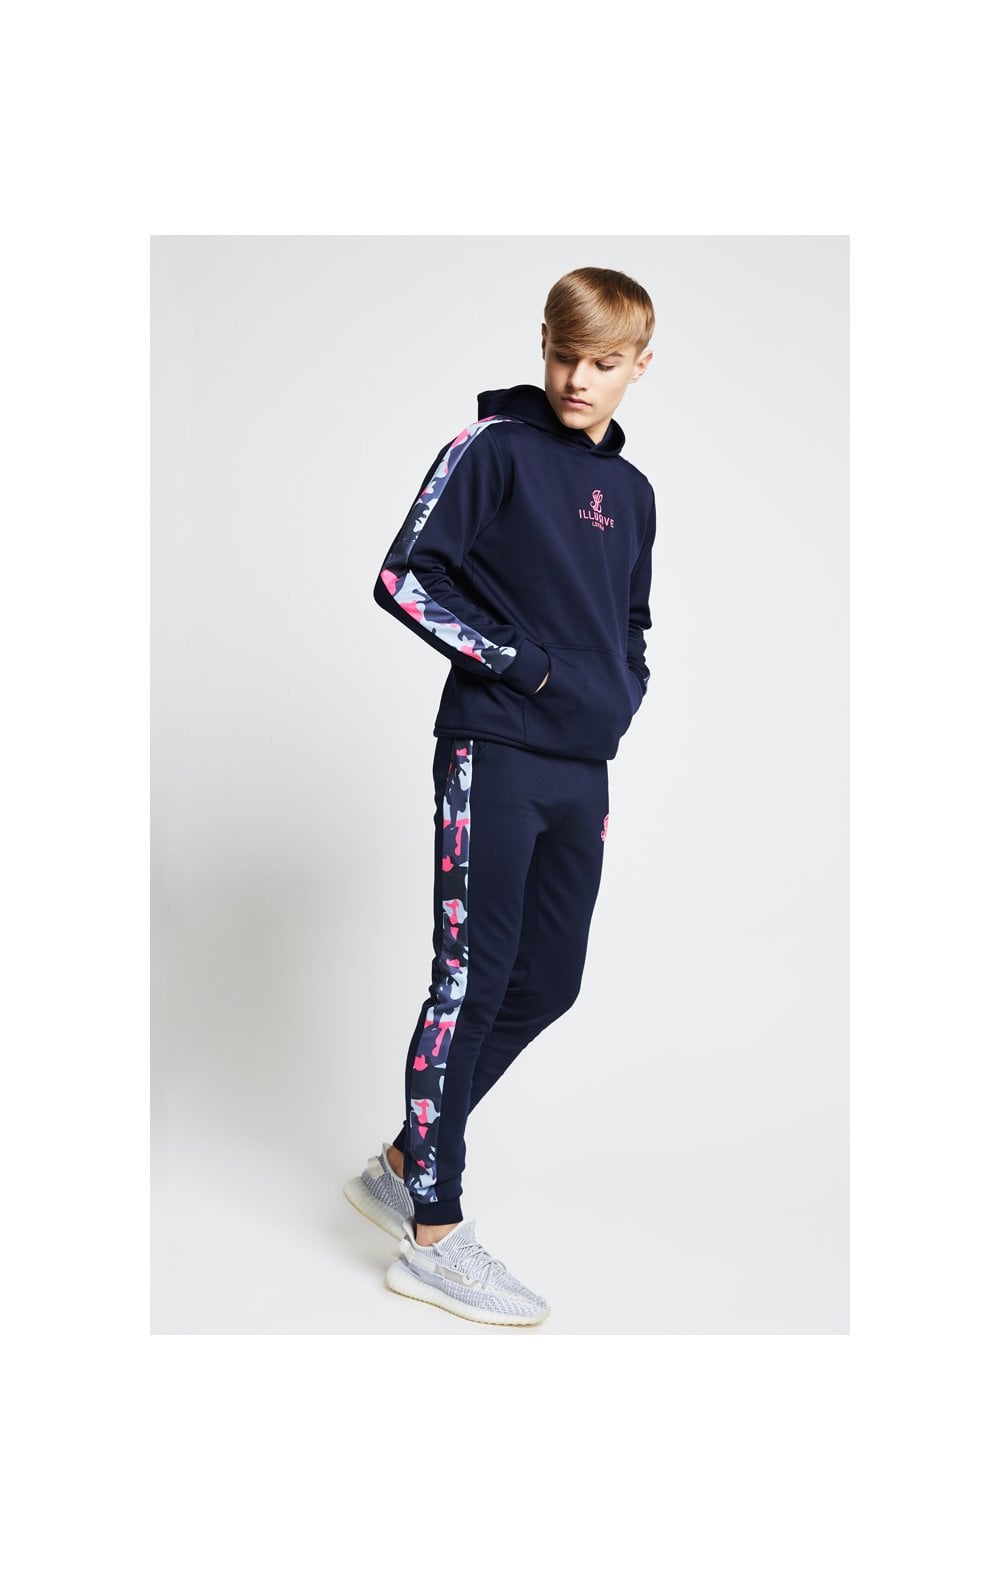 Illusive London Panelled Overhead Hoodie - Navy & Neon Pink Camo (4)